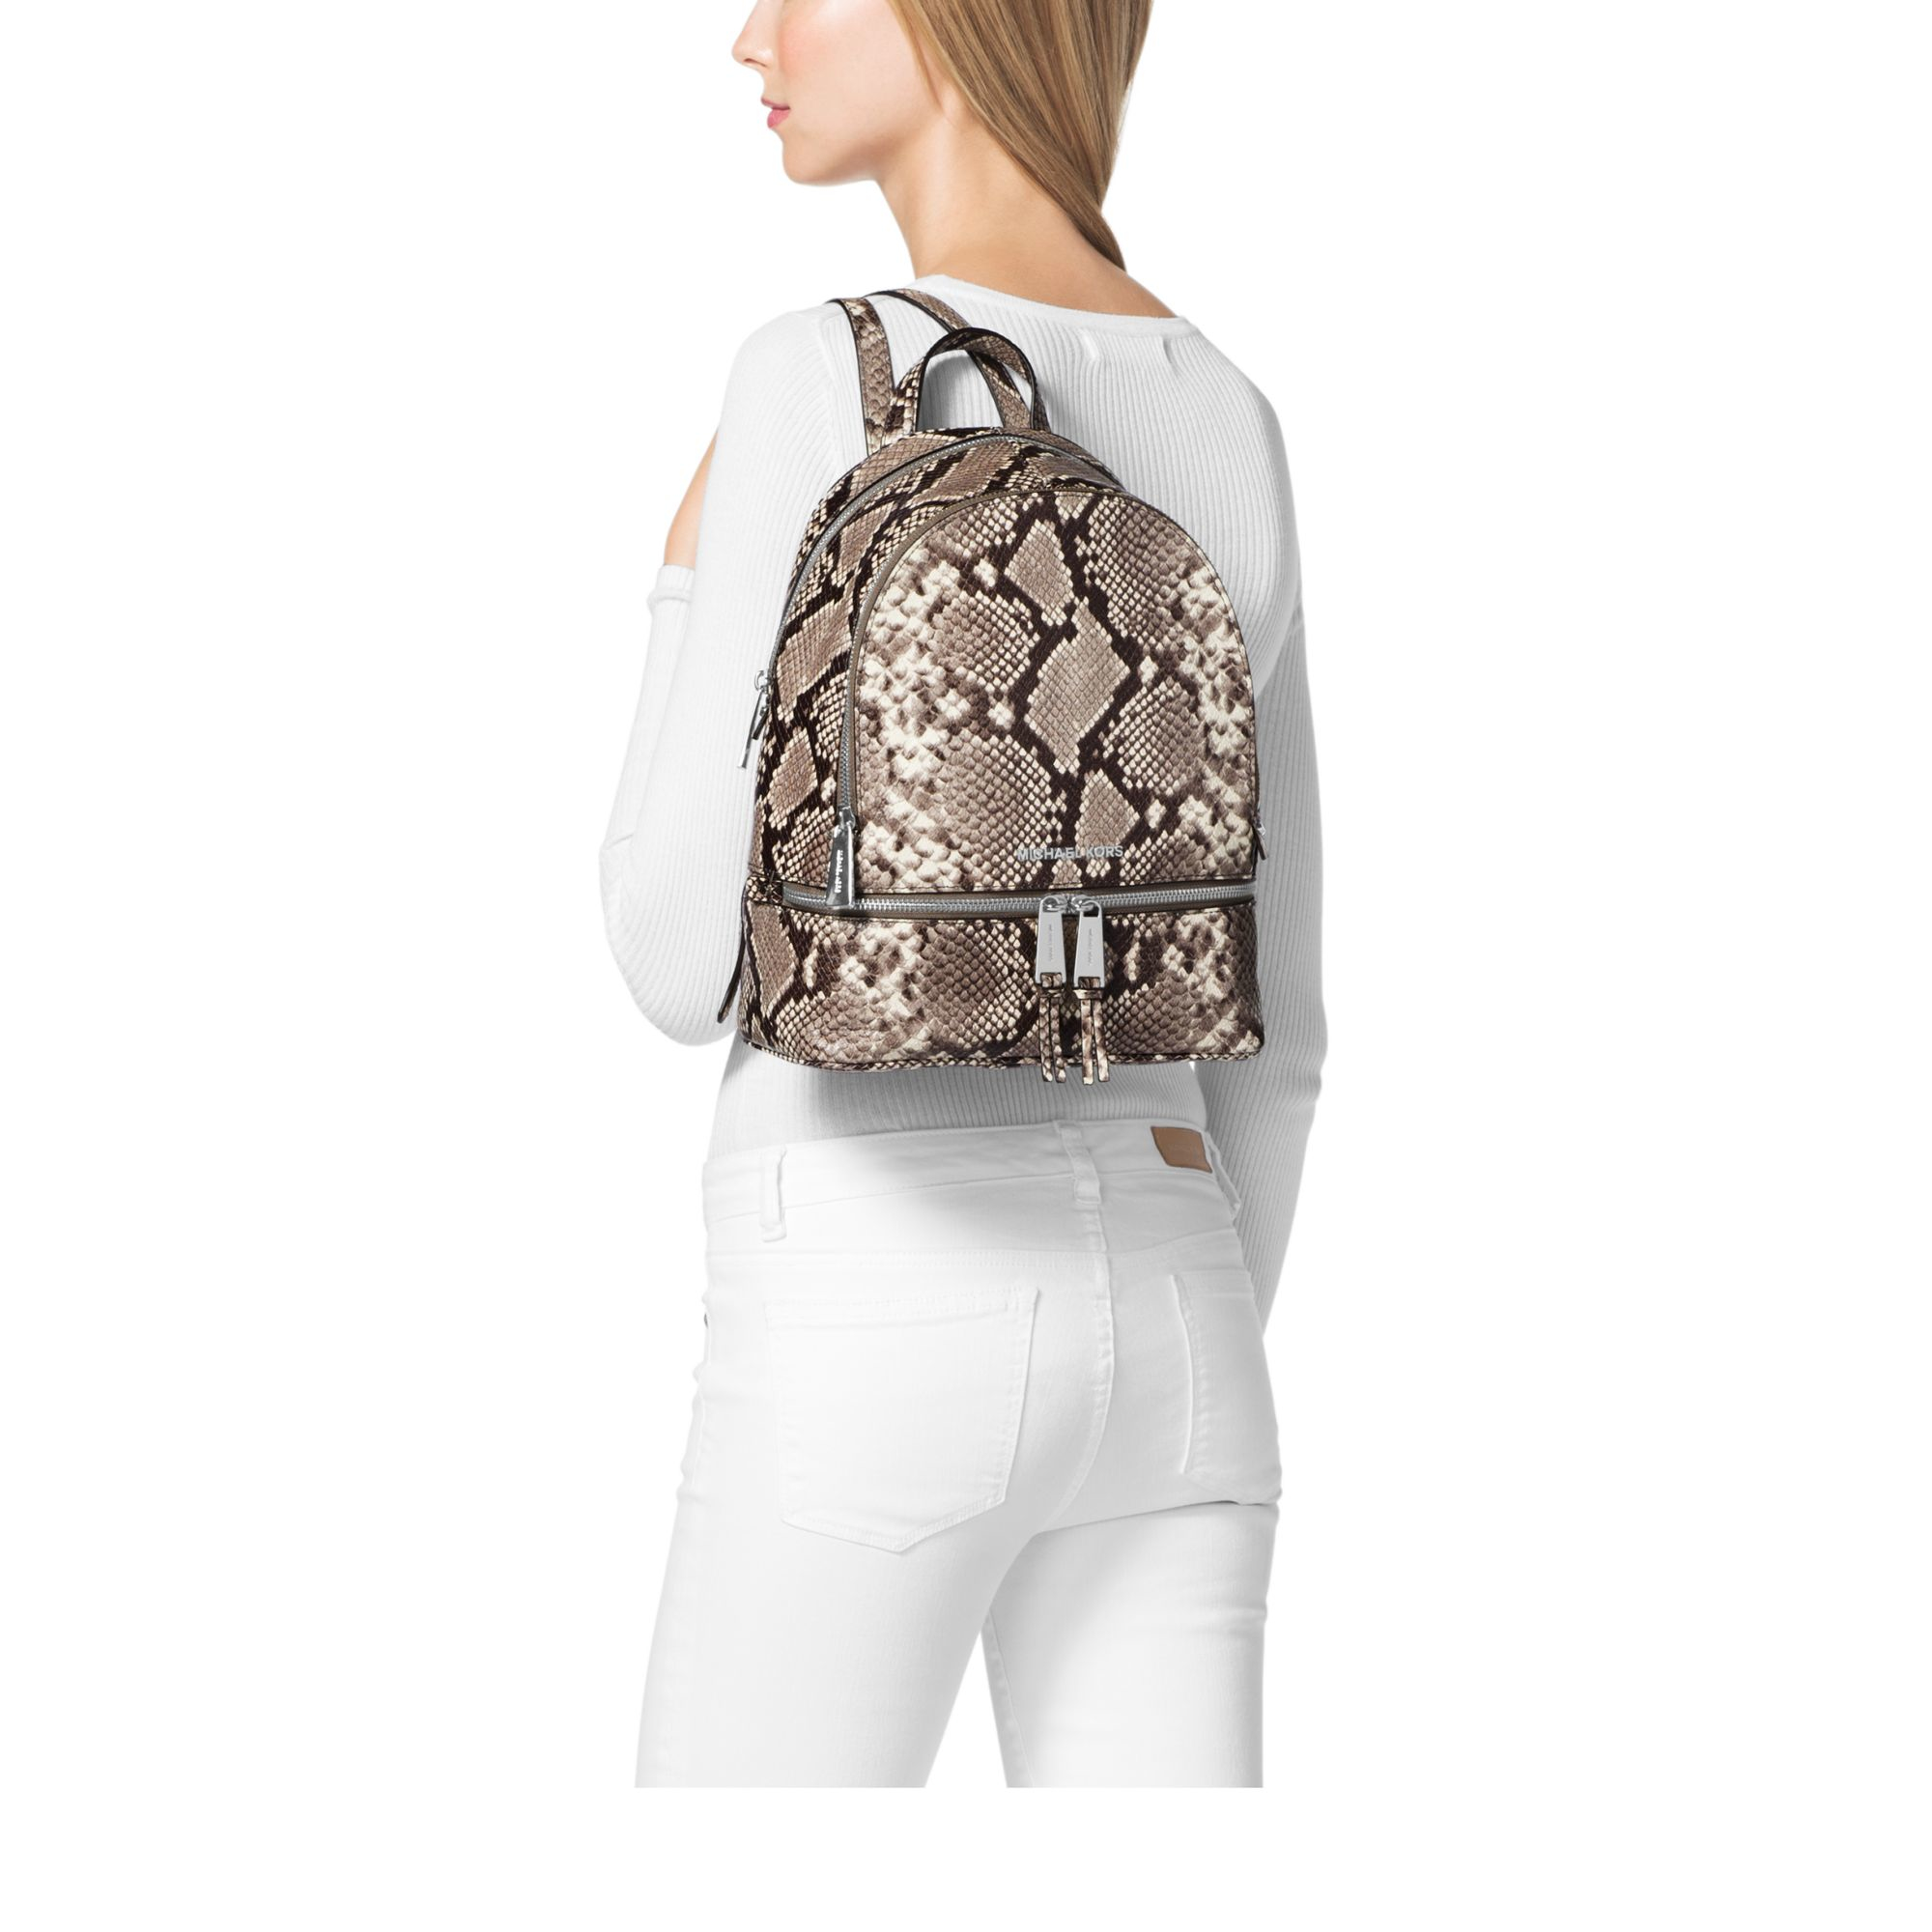 0330896a41e039 Michael Kors Rhea Small Embossed-leather Backpack in Natural - Lyst